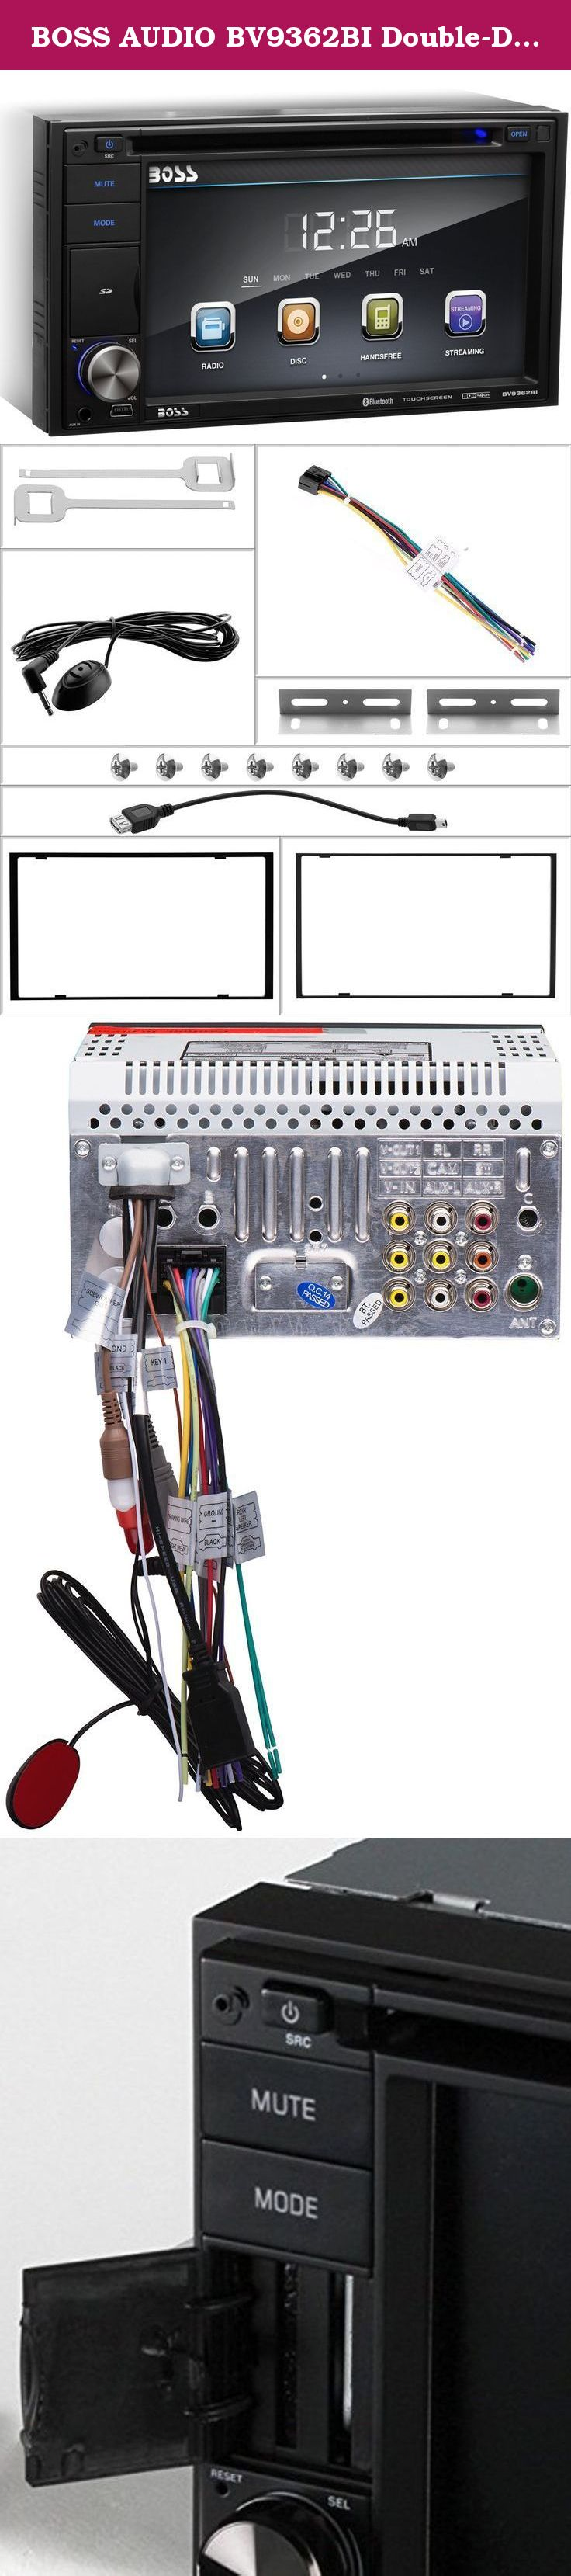 Exelent Wiring Diagram For Visteon Dvd Monitor Image - Electrical ...